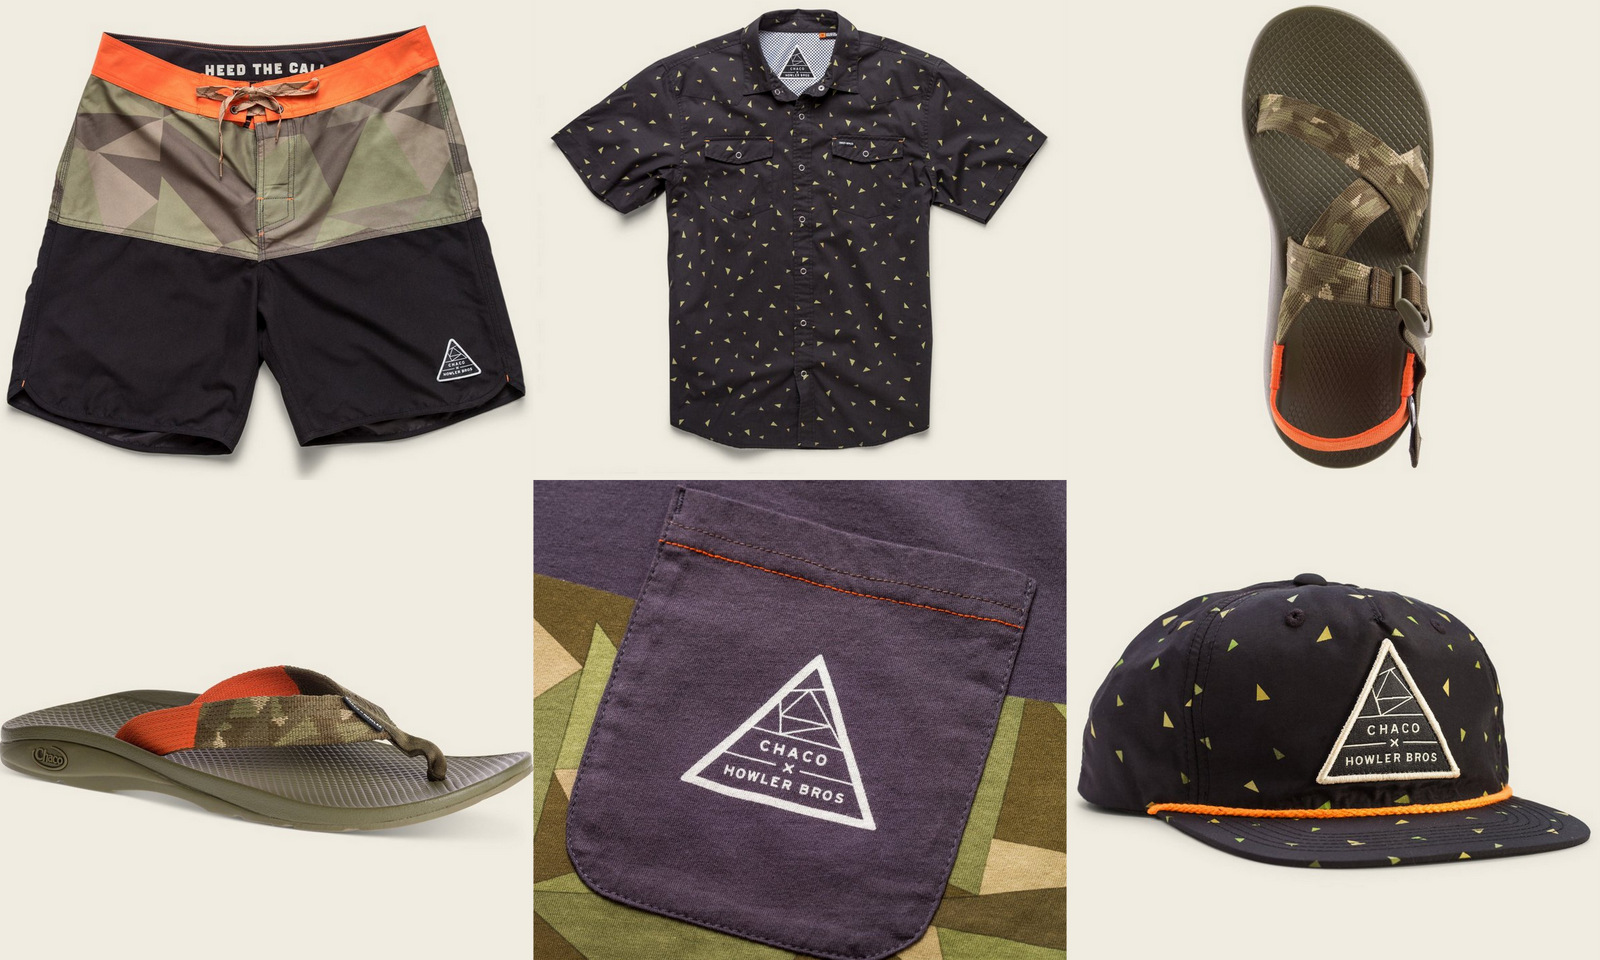 7521b12fa99 The peeps at Howler Brothers have linked up with Chaco to offer a limited  edition collection of apparel